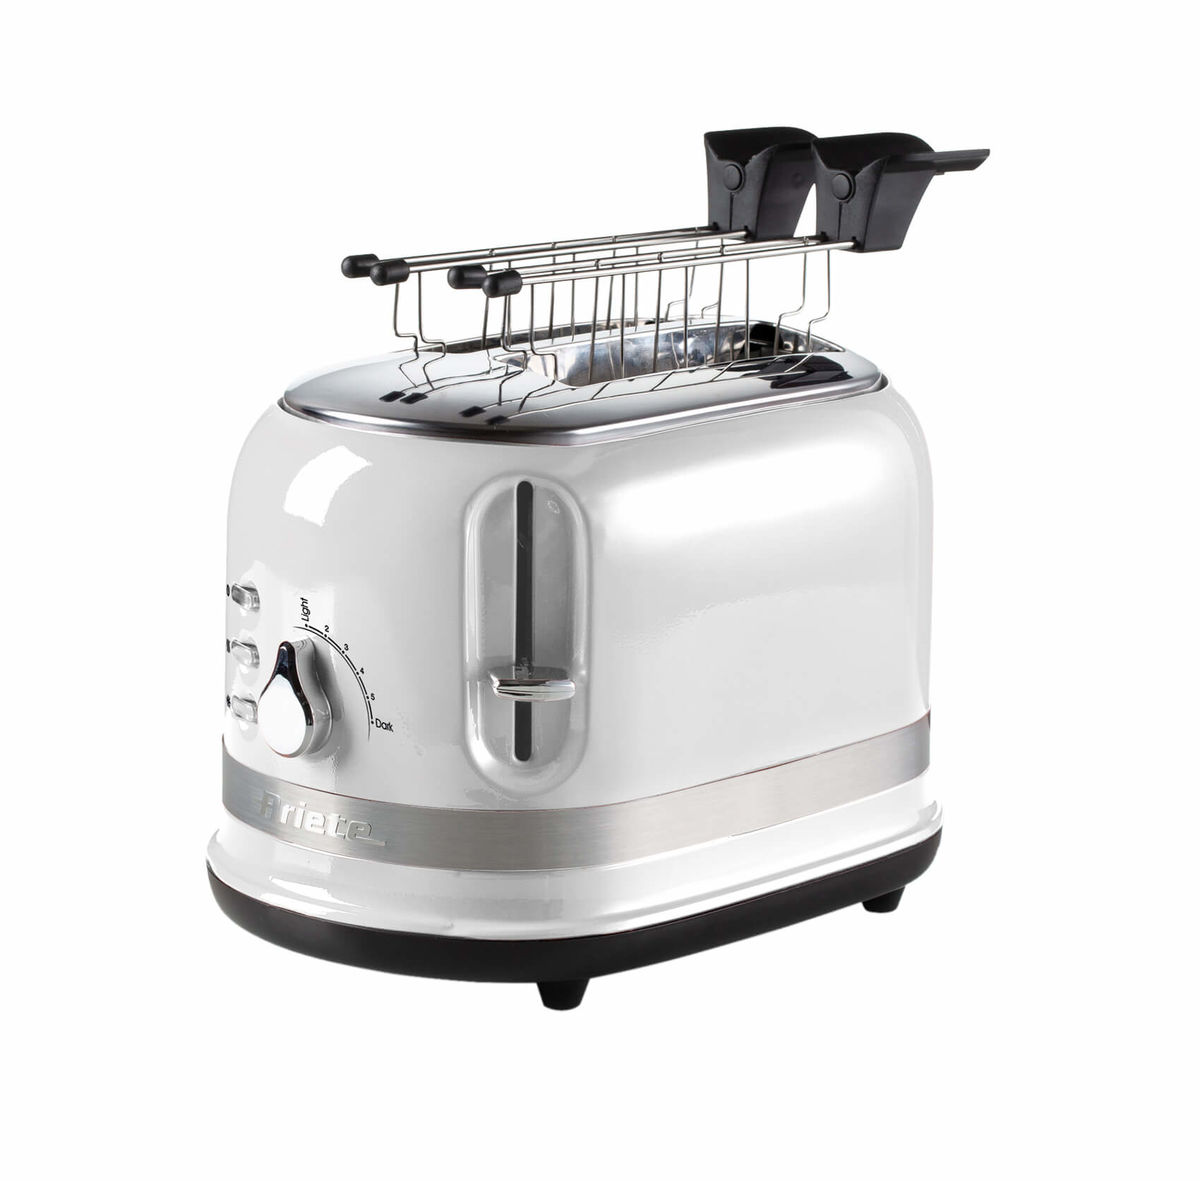 Image of Ariete 149-MOD-WH Toaster weiss